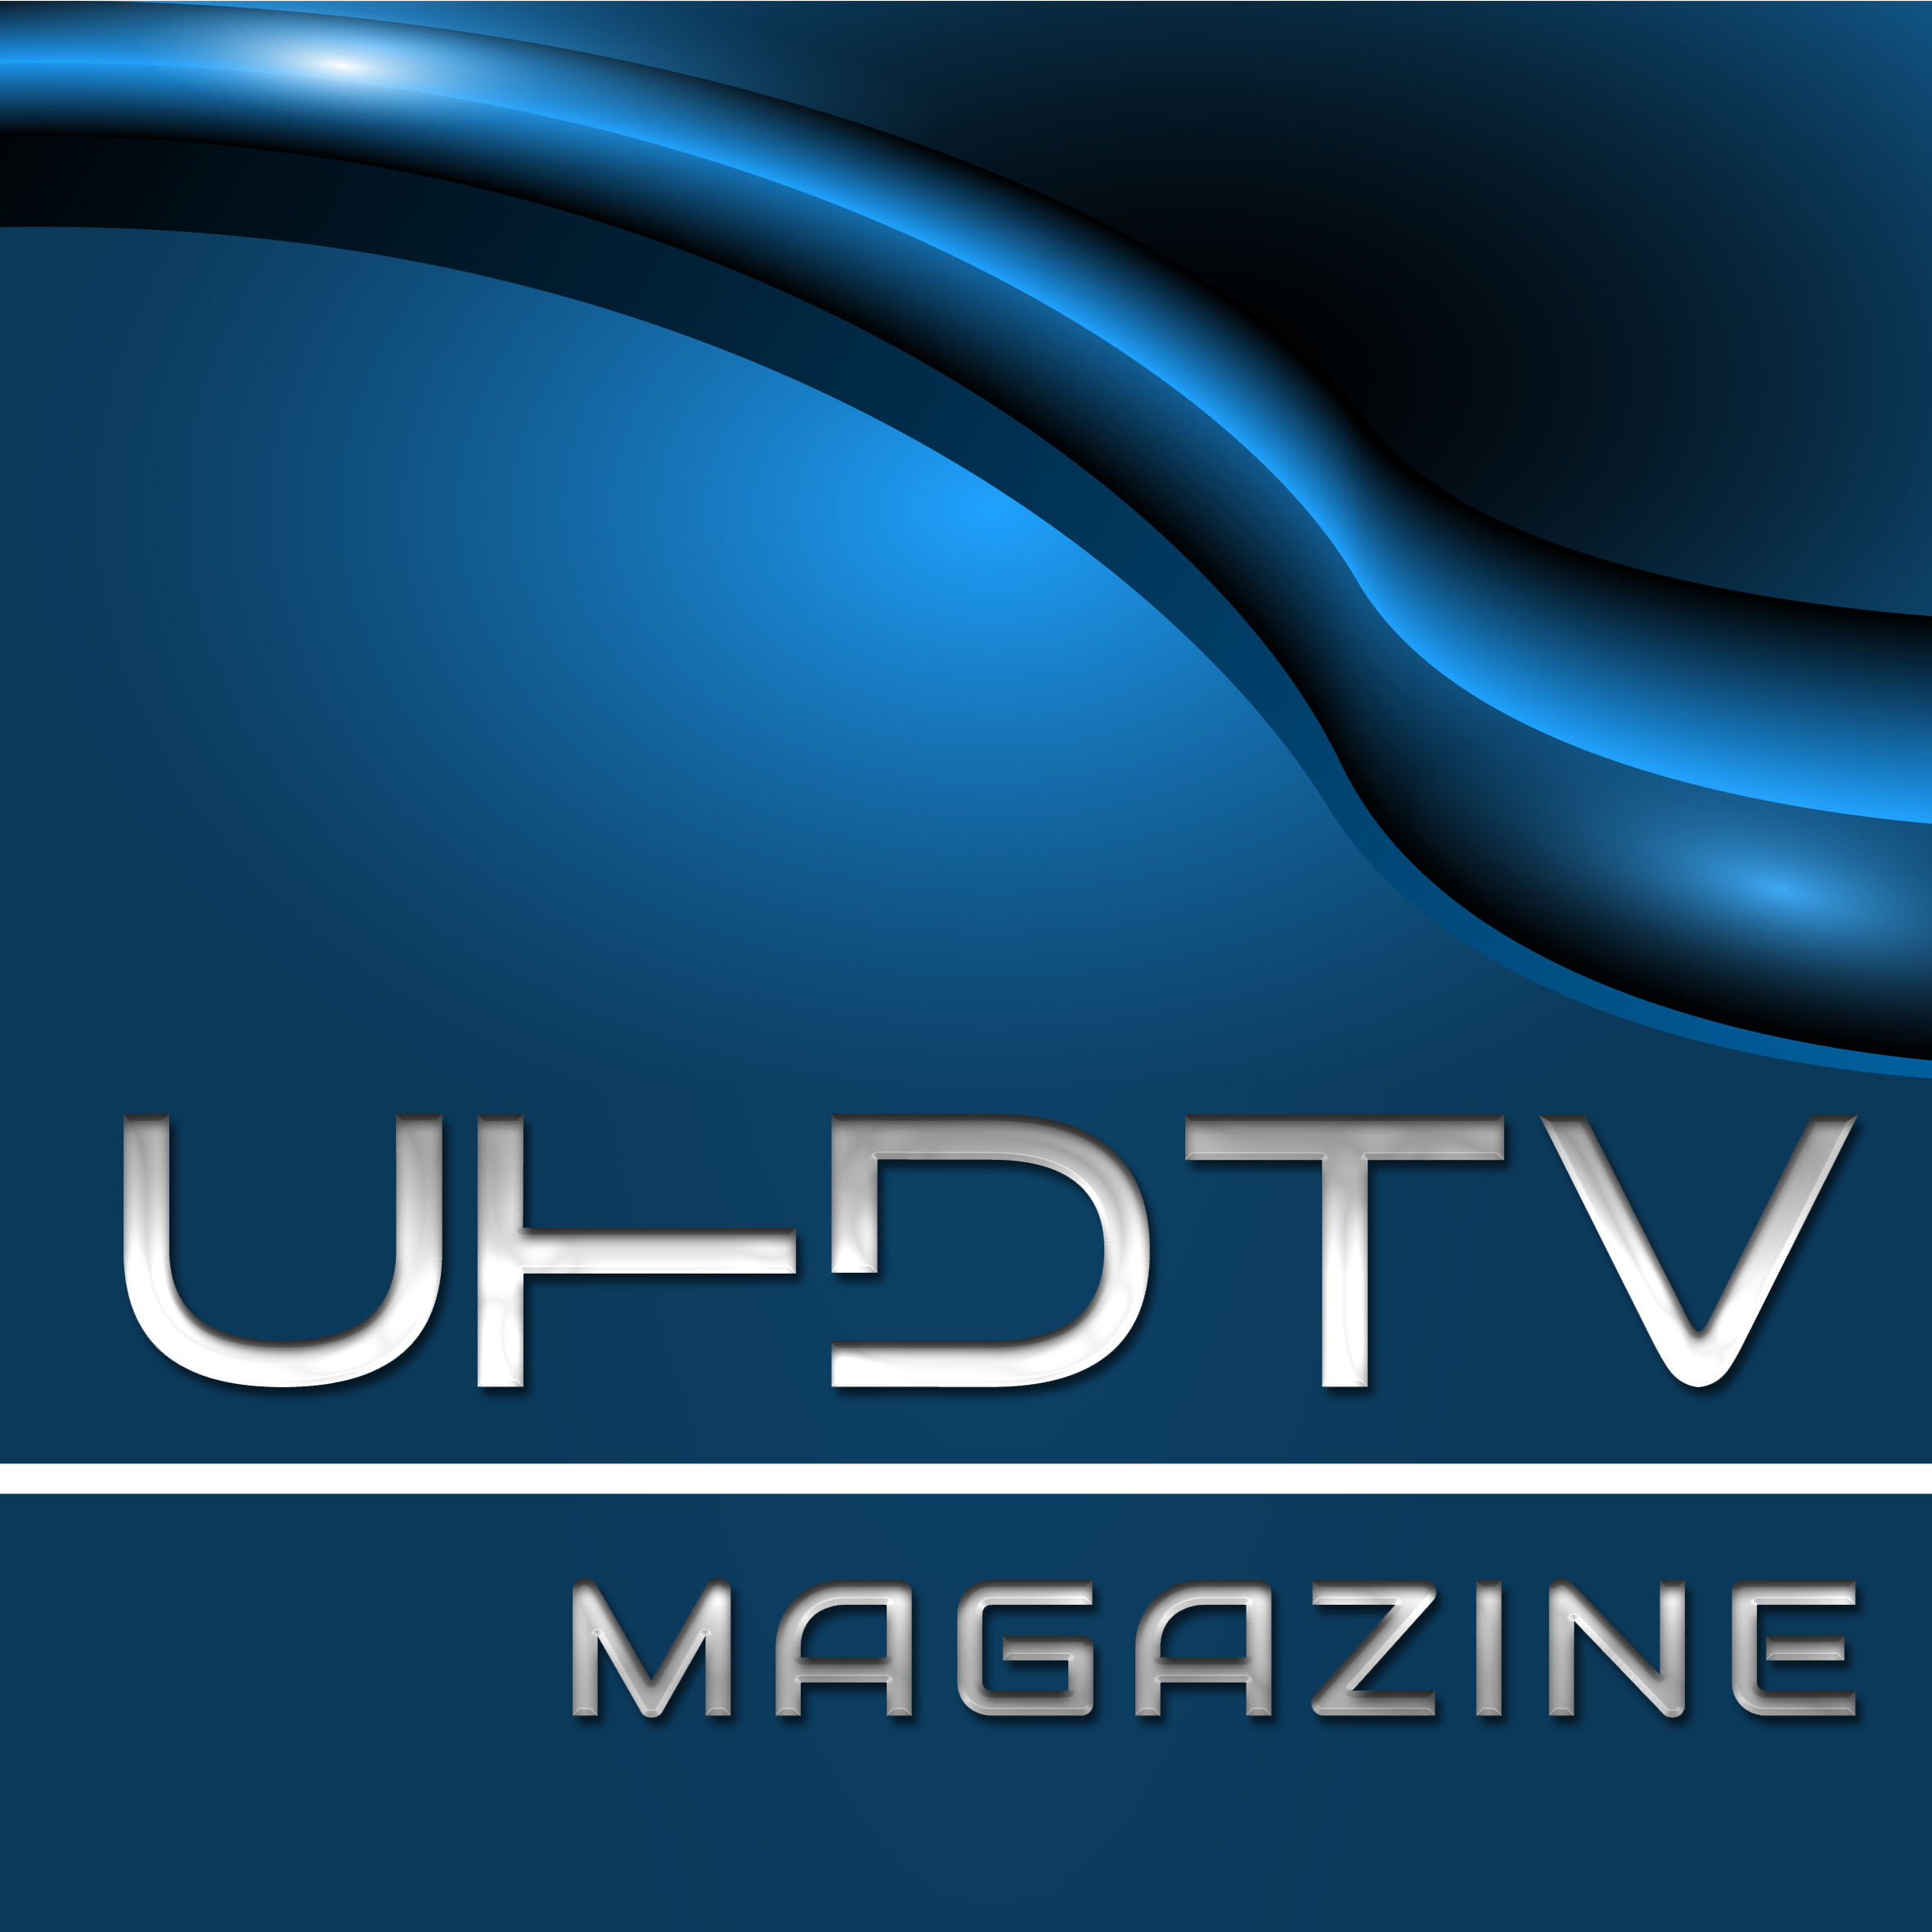 Ultra high definition television uhdtv - Ultra high def tv prank ...